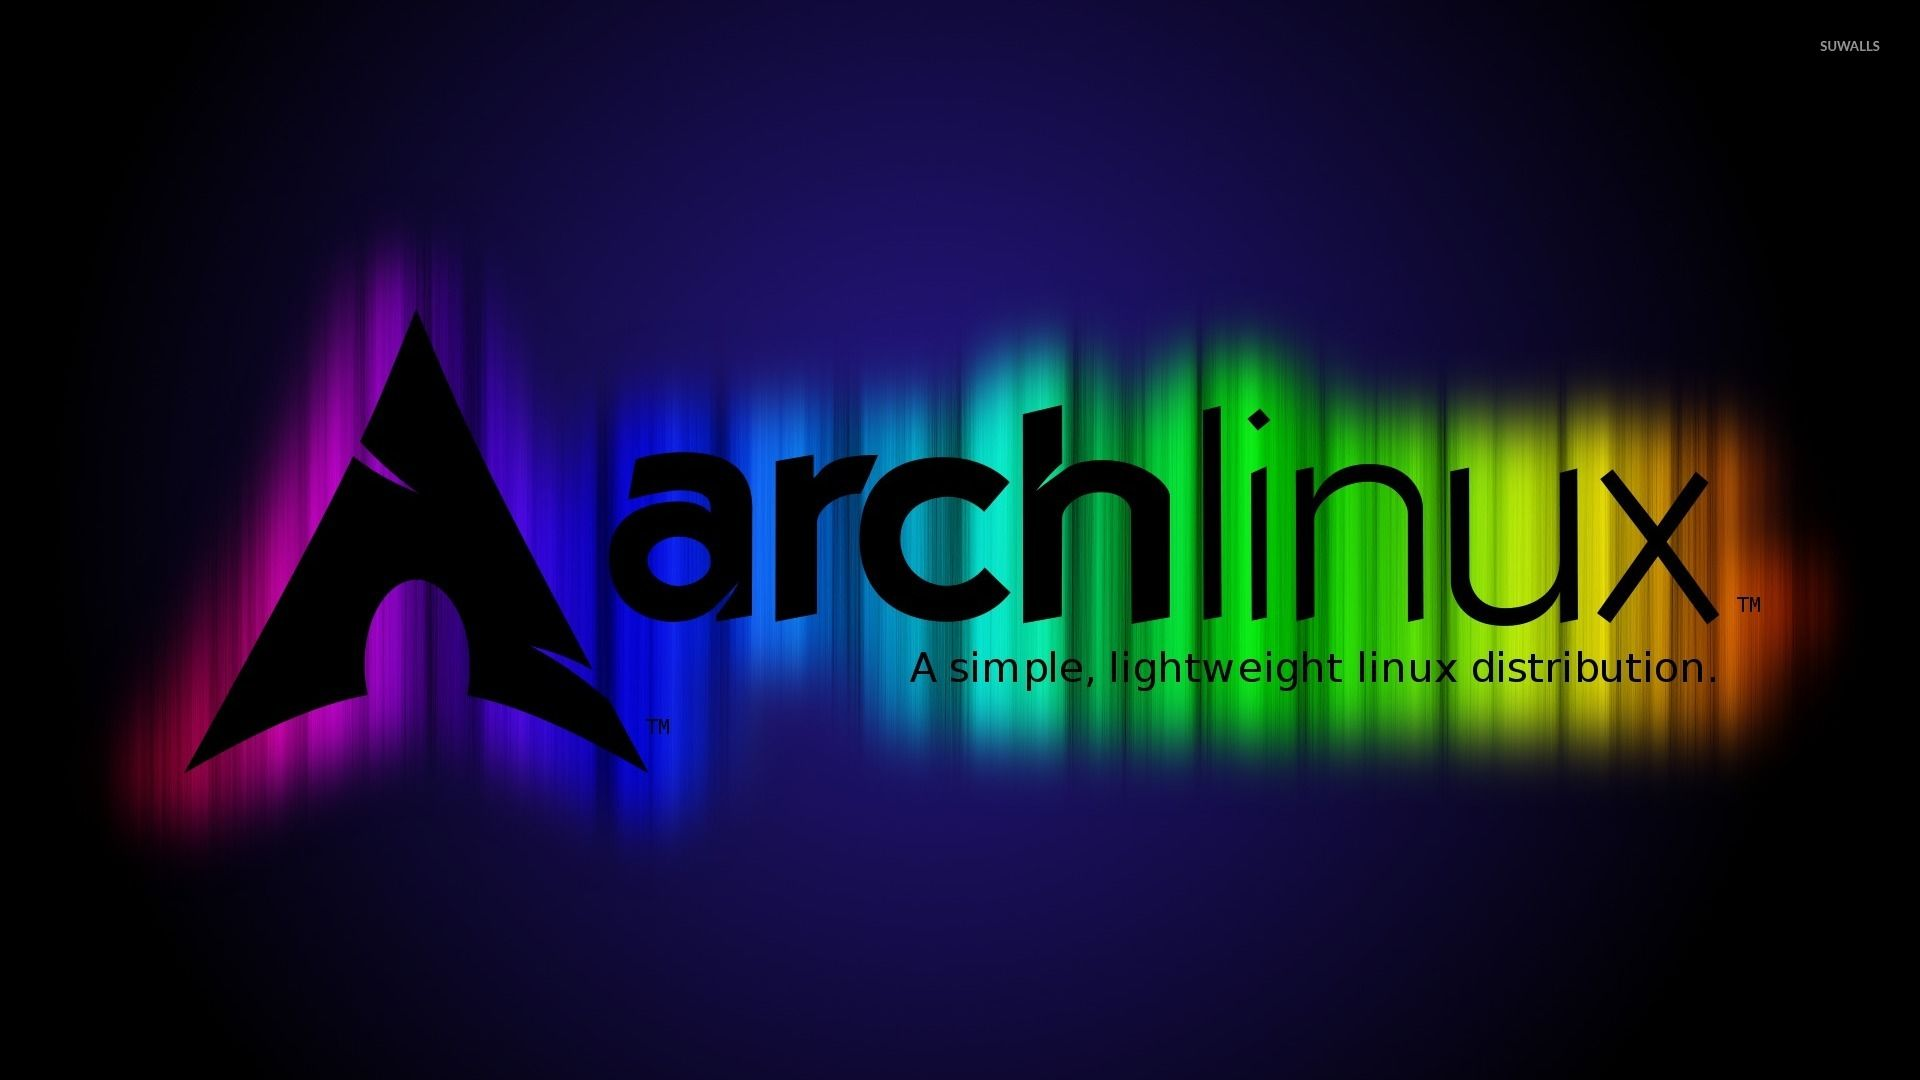 Arch hd picture